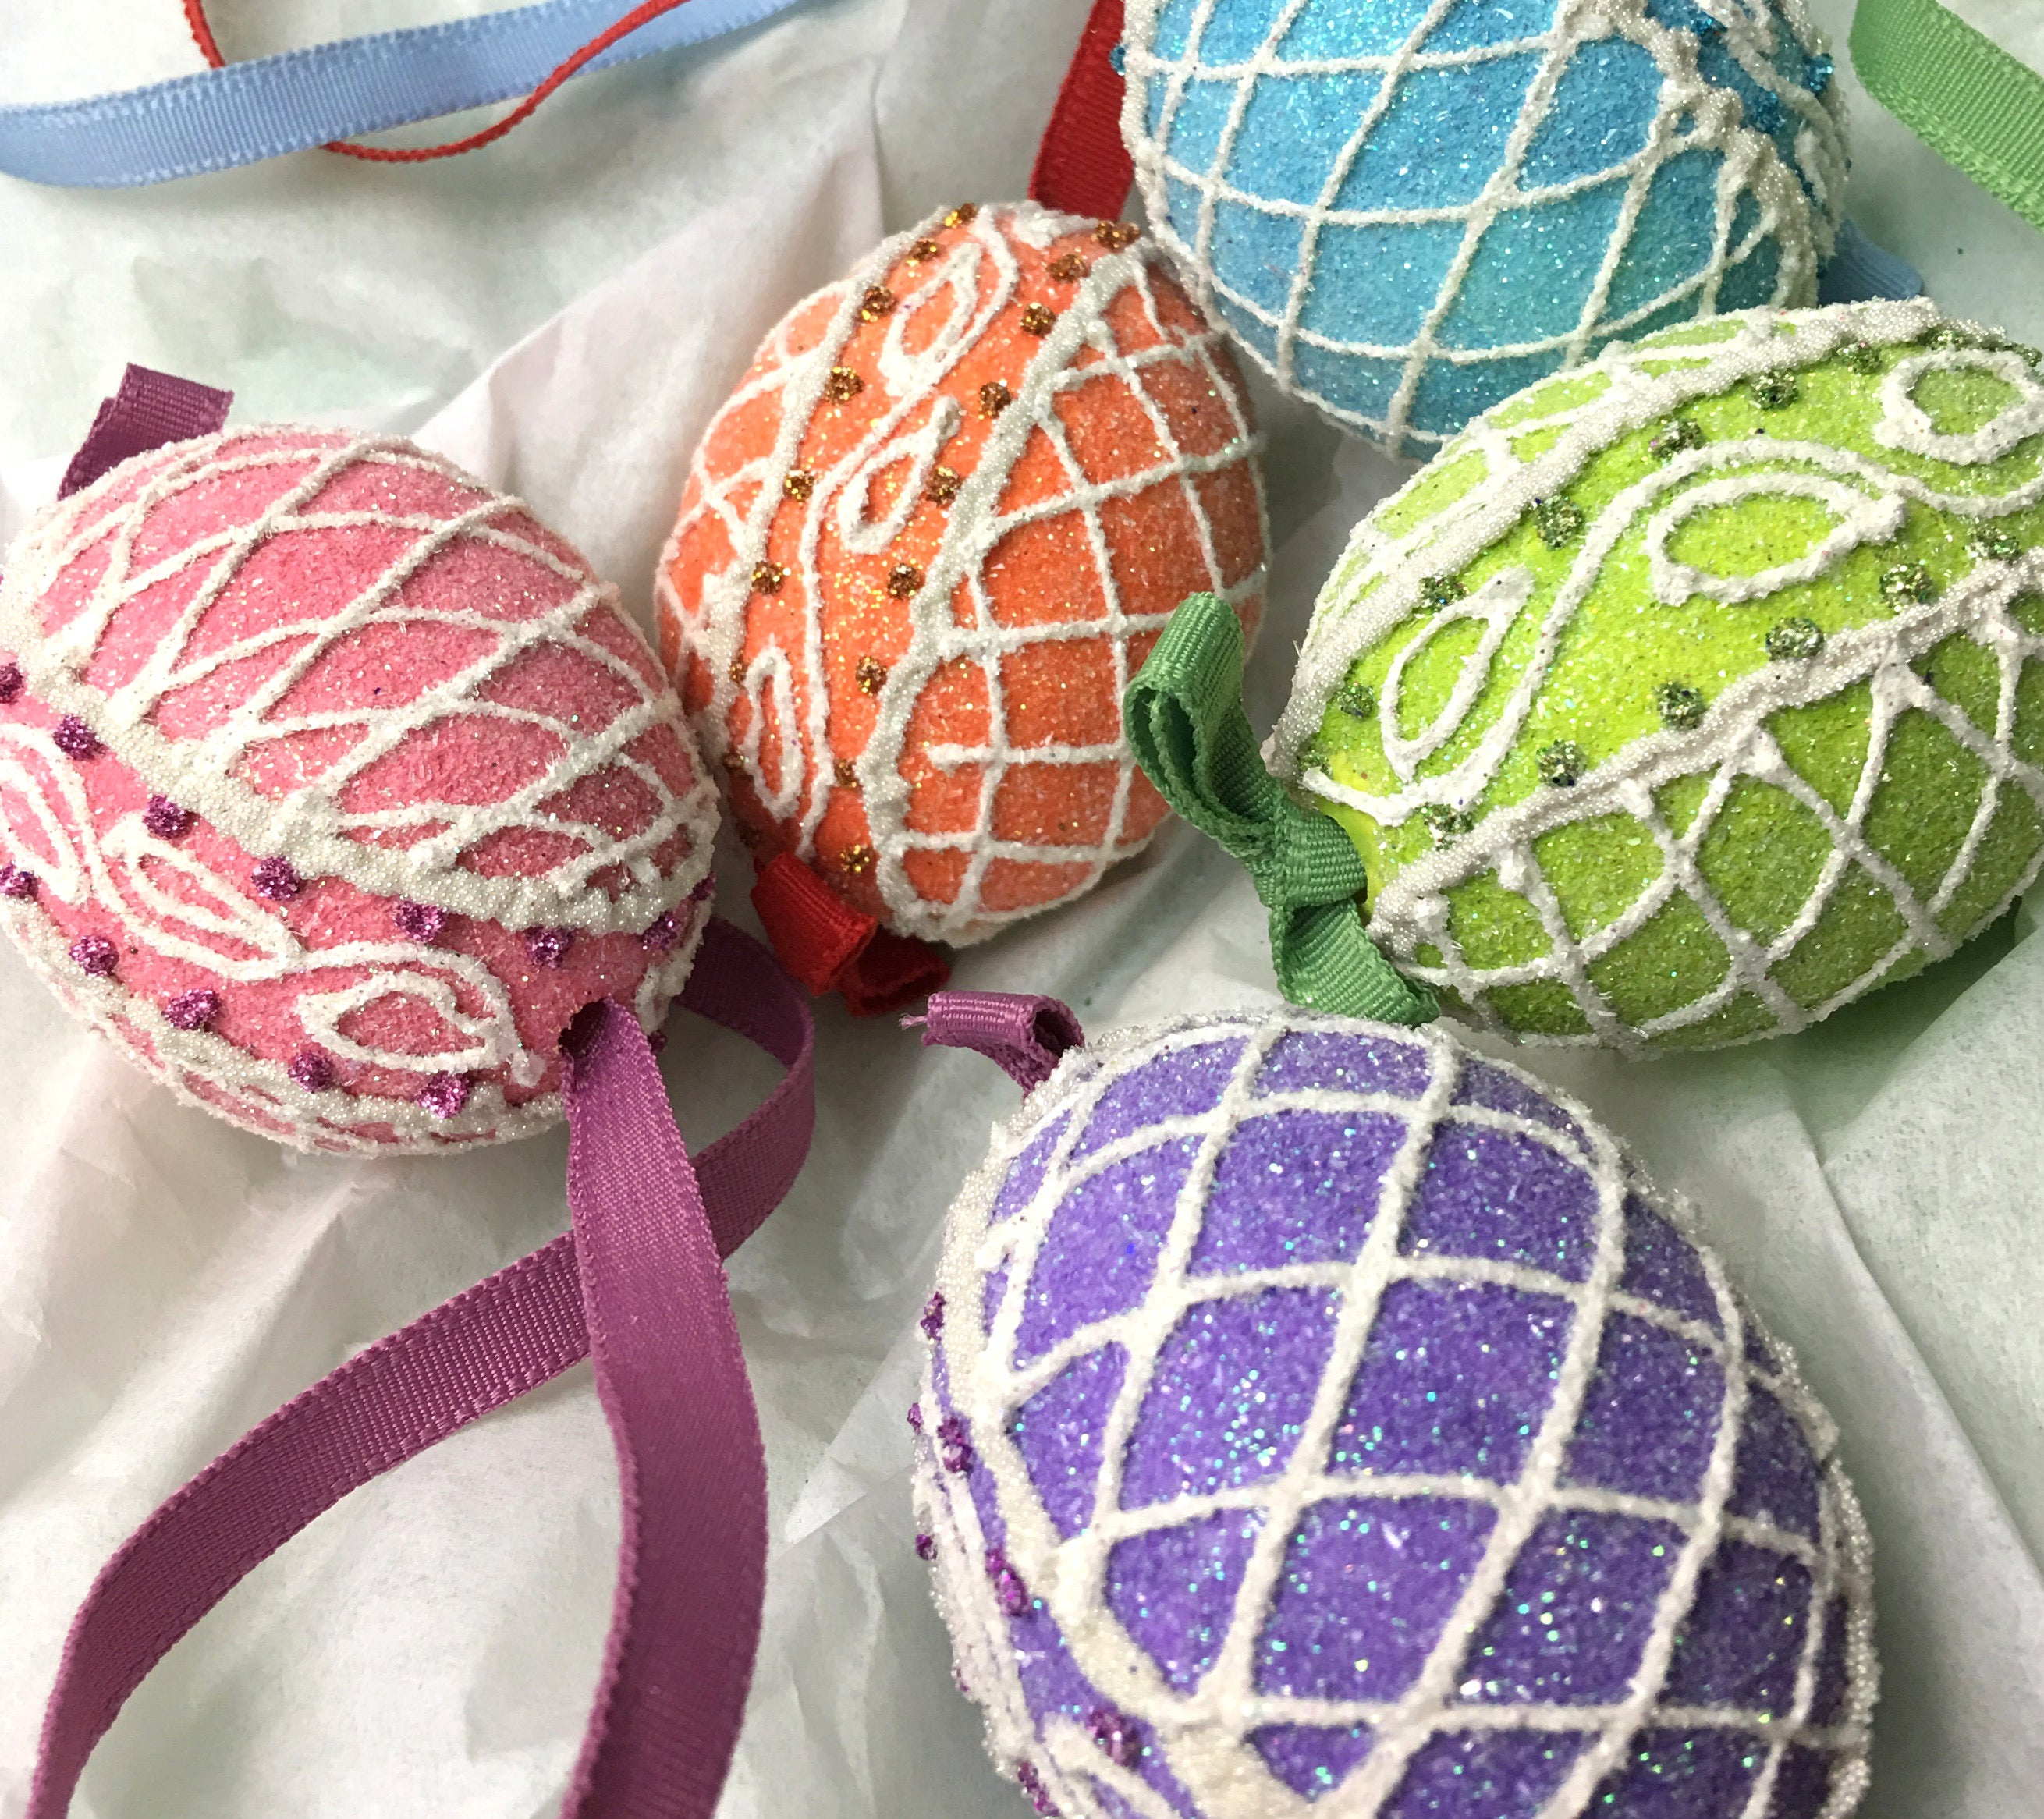 Real Egg Ornaments Made to Look Like Sugar Eggs